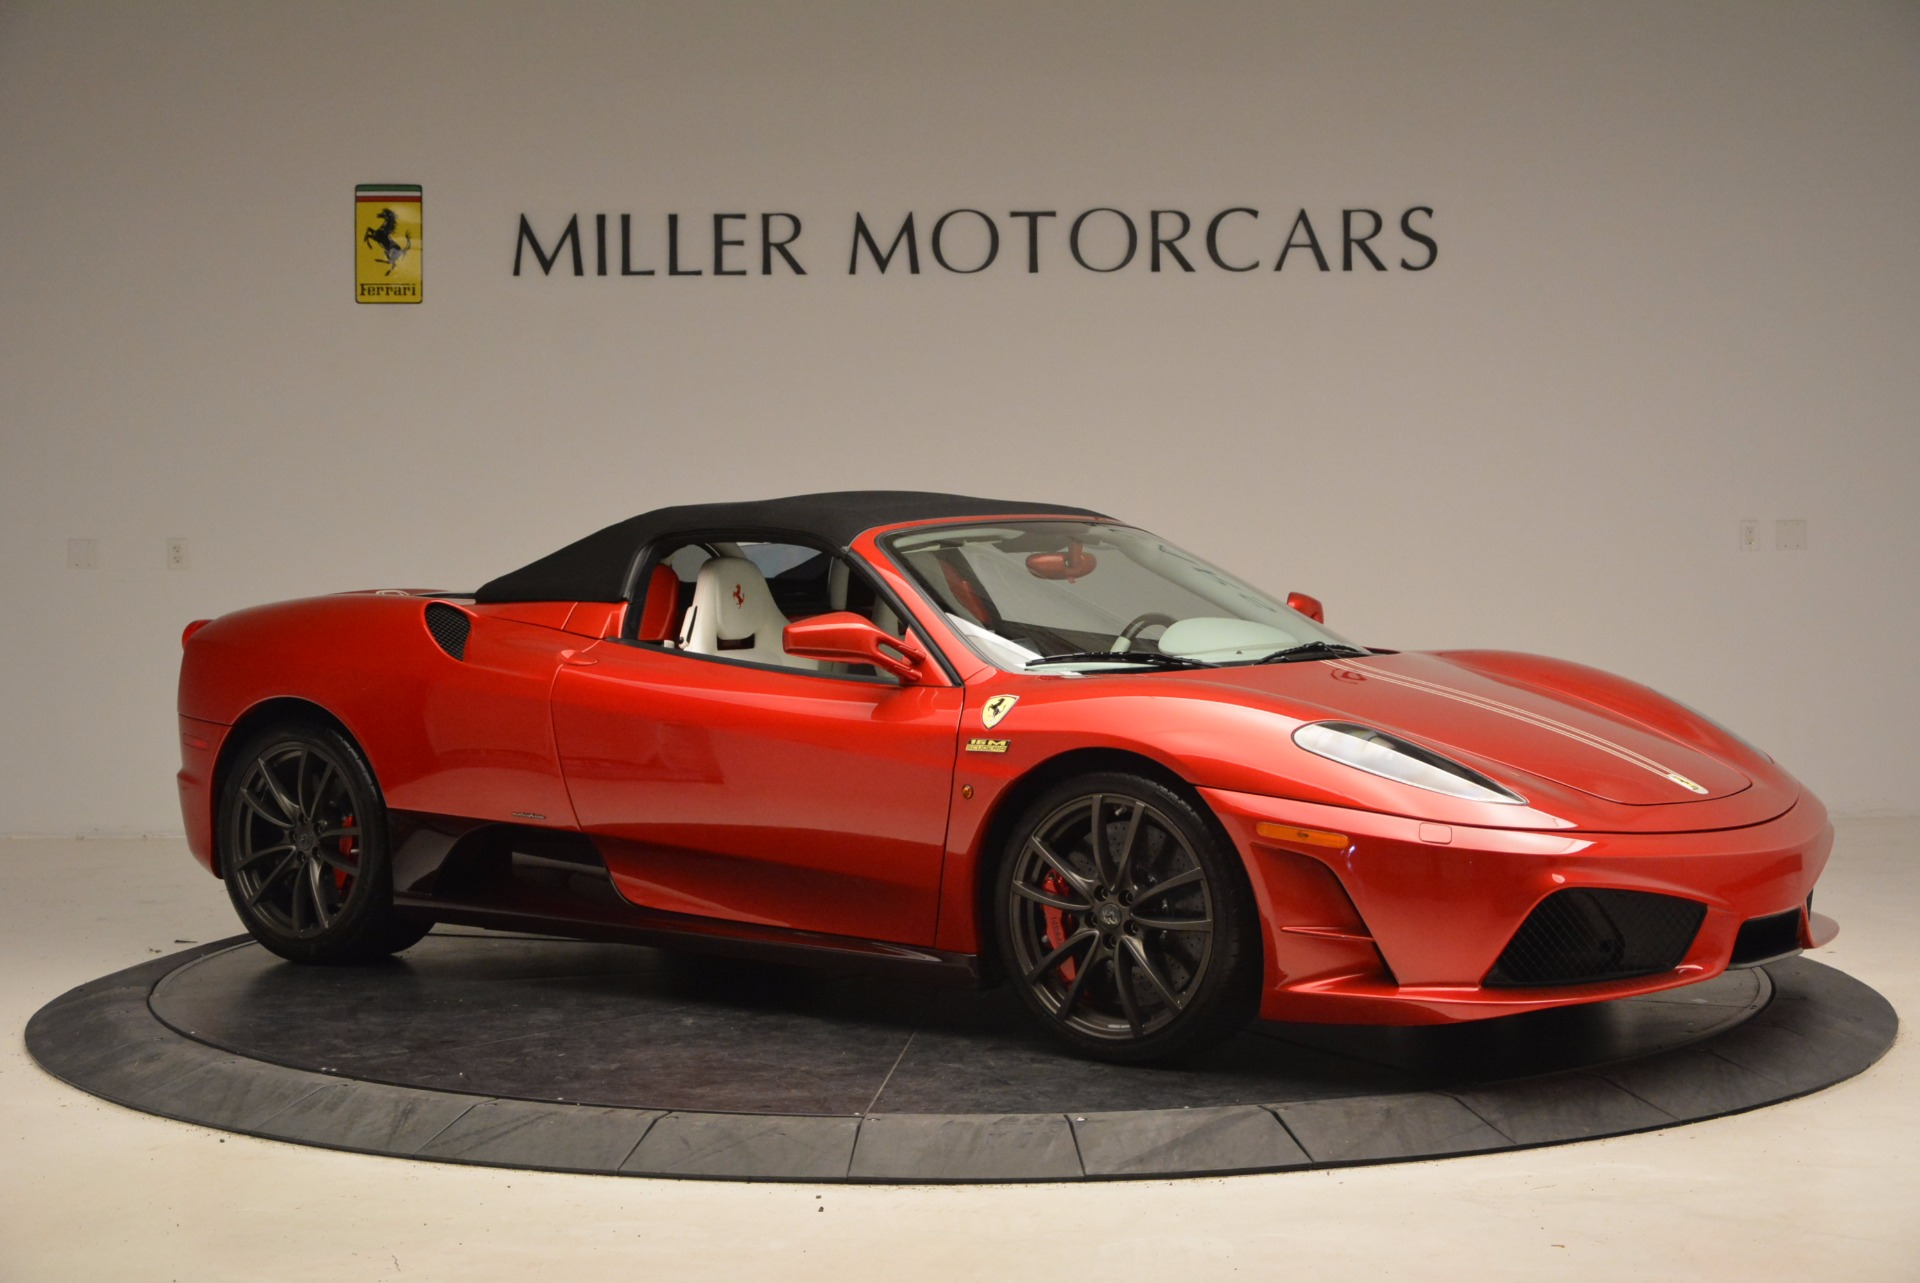 Used 2009 Ferrari F430 Scuderia 16M For Sale In Westport, CT 1398_p22